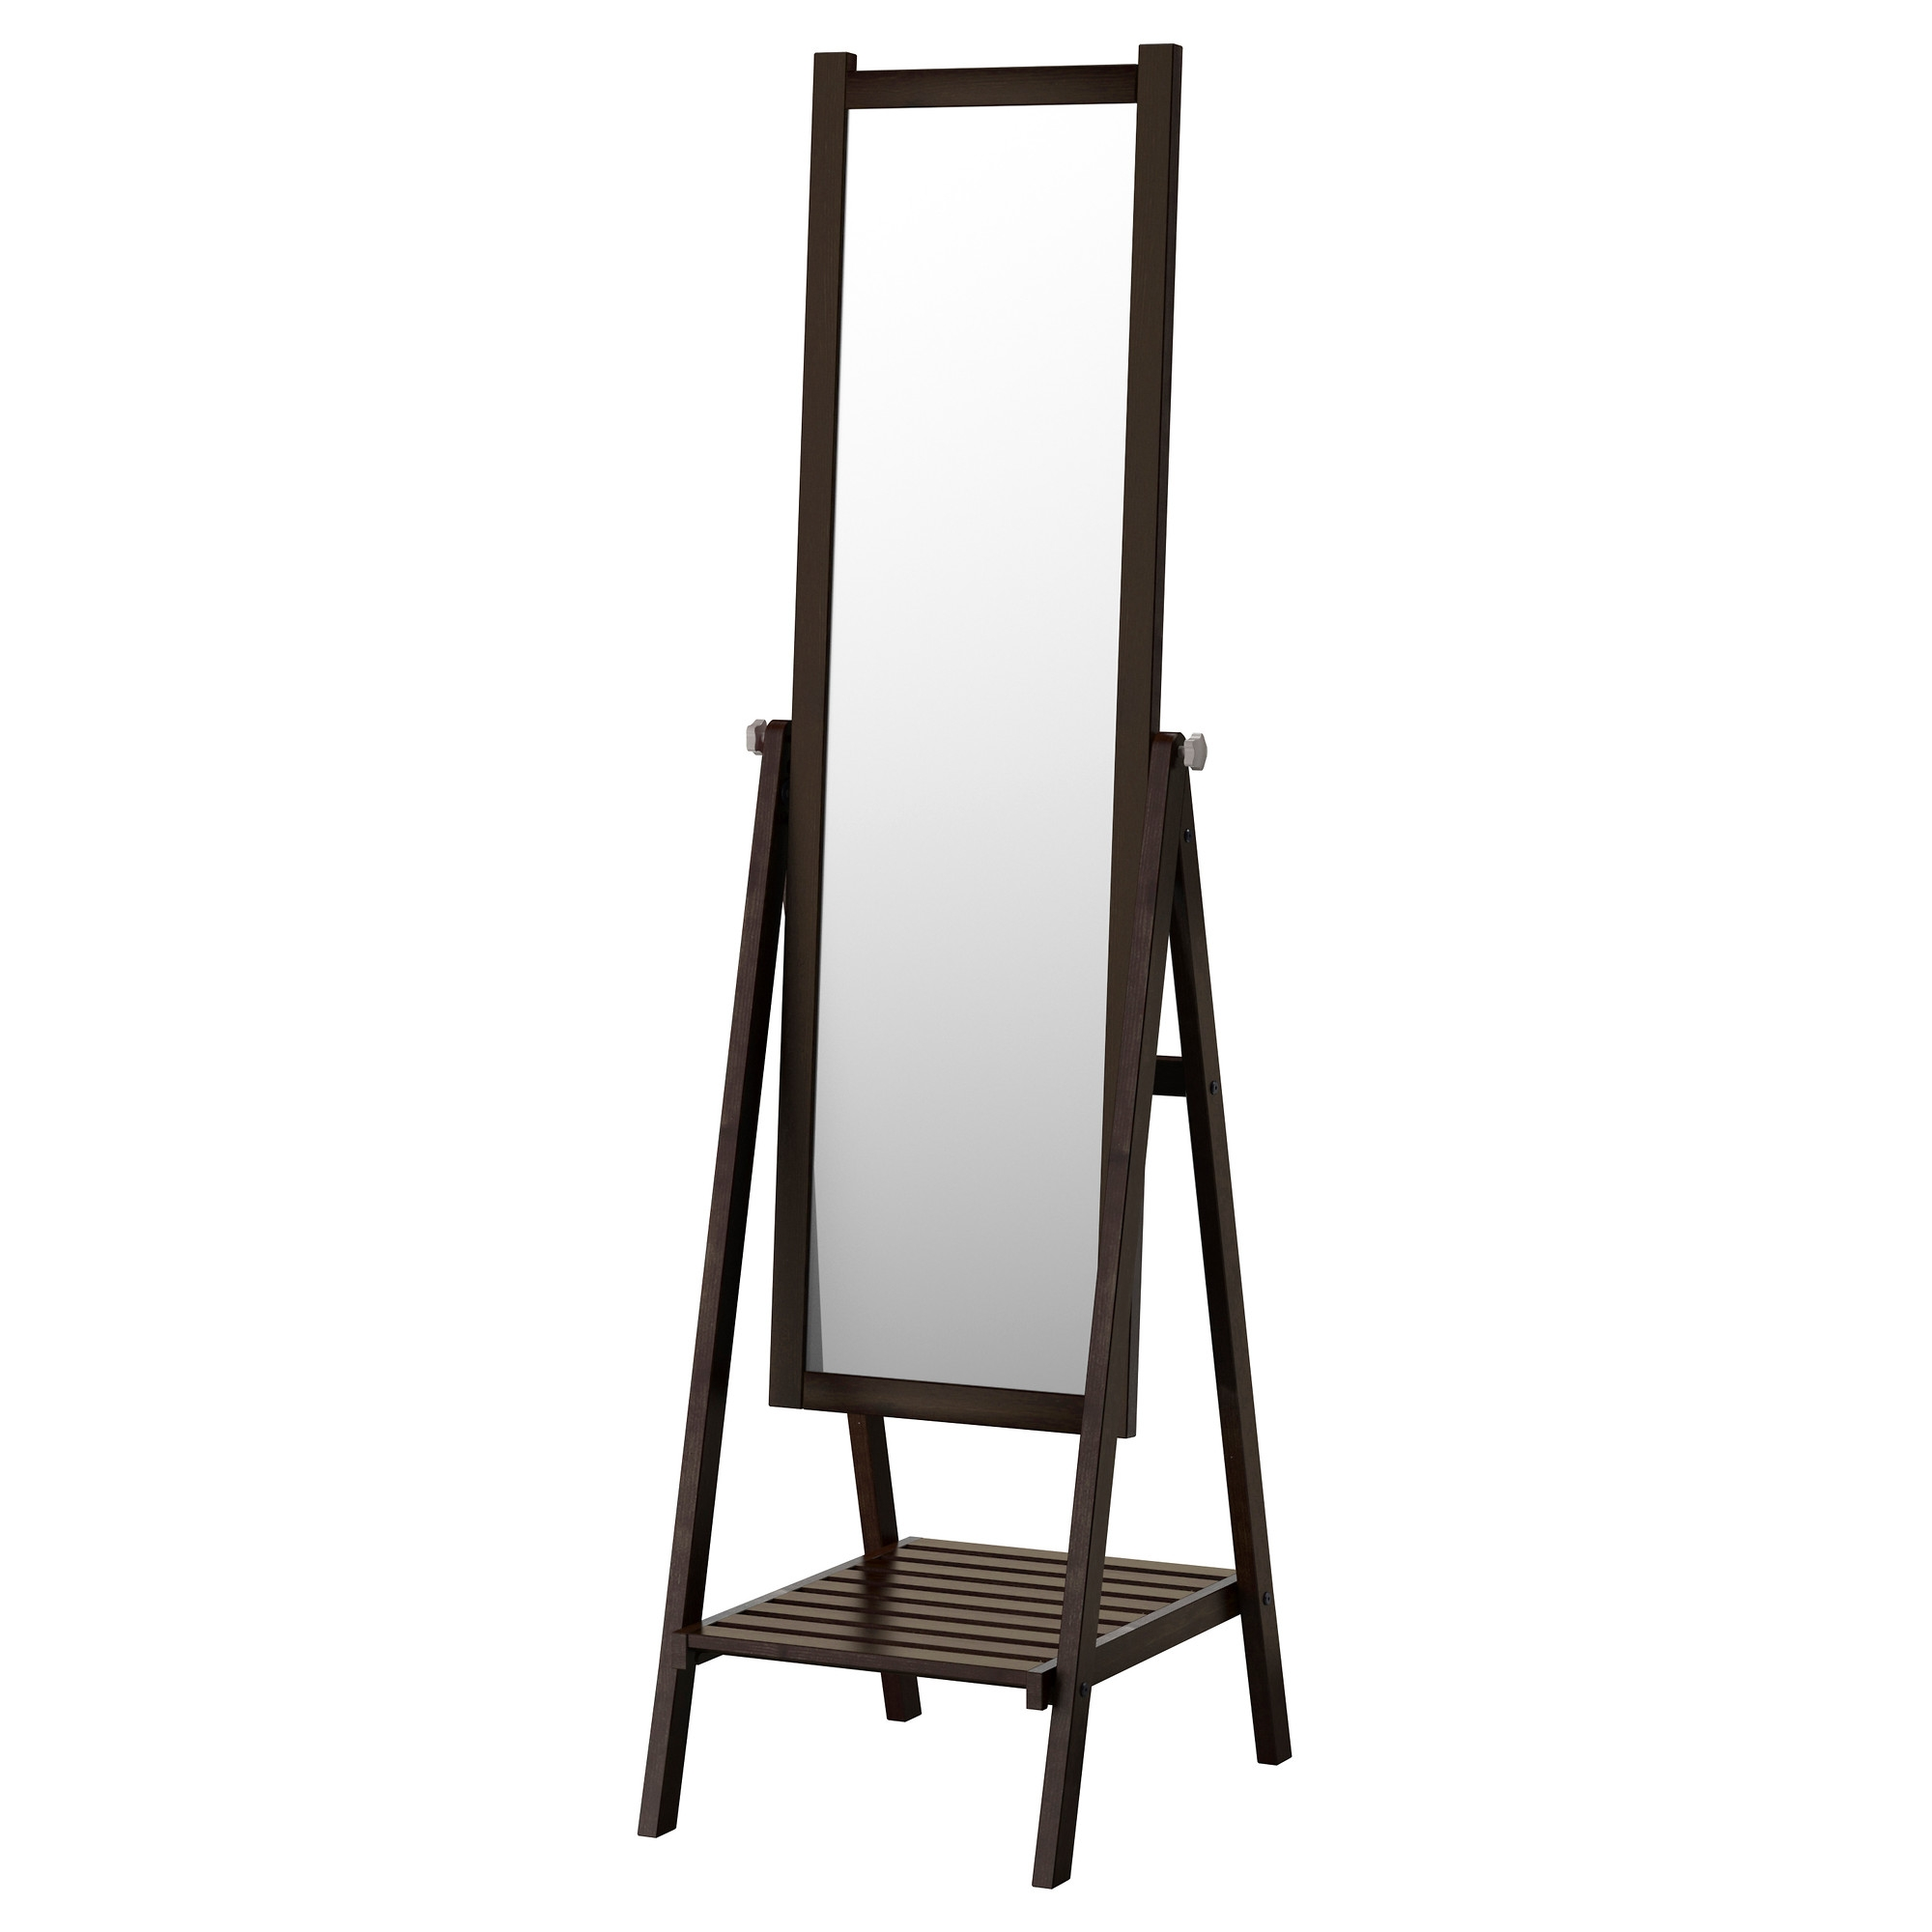 Full Length Mirrors Ikea Throughout Big Standing Mirror (Image 9 of 15)